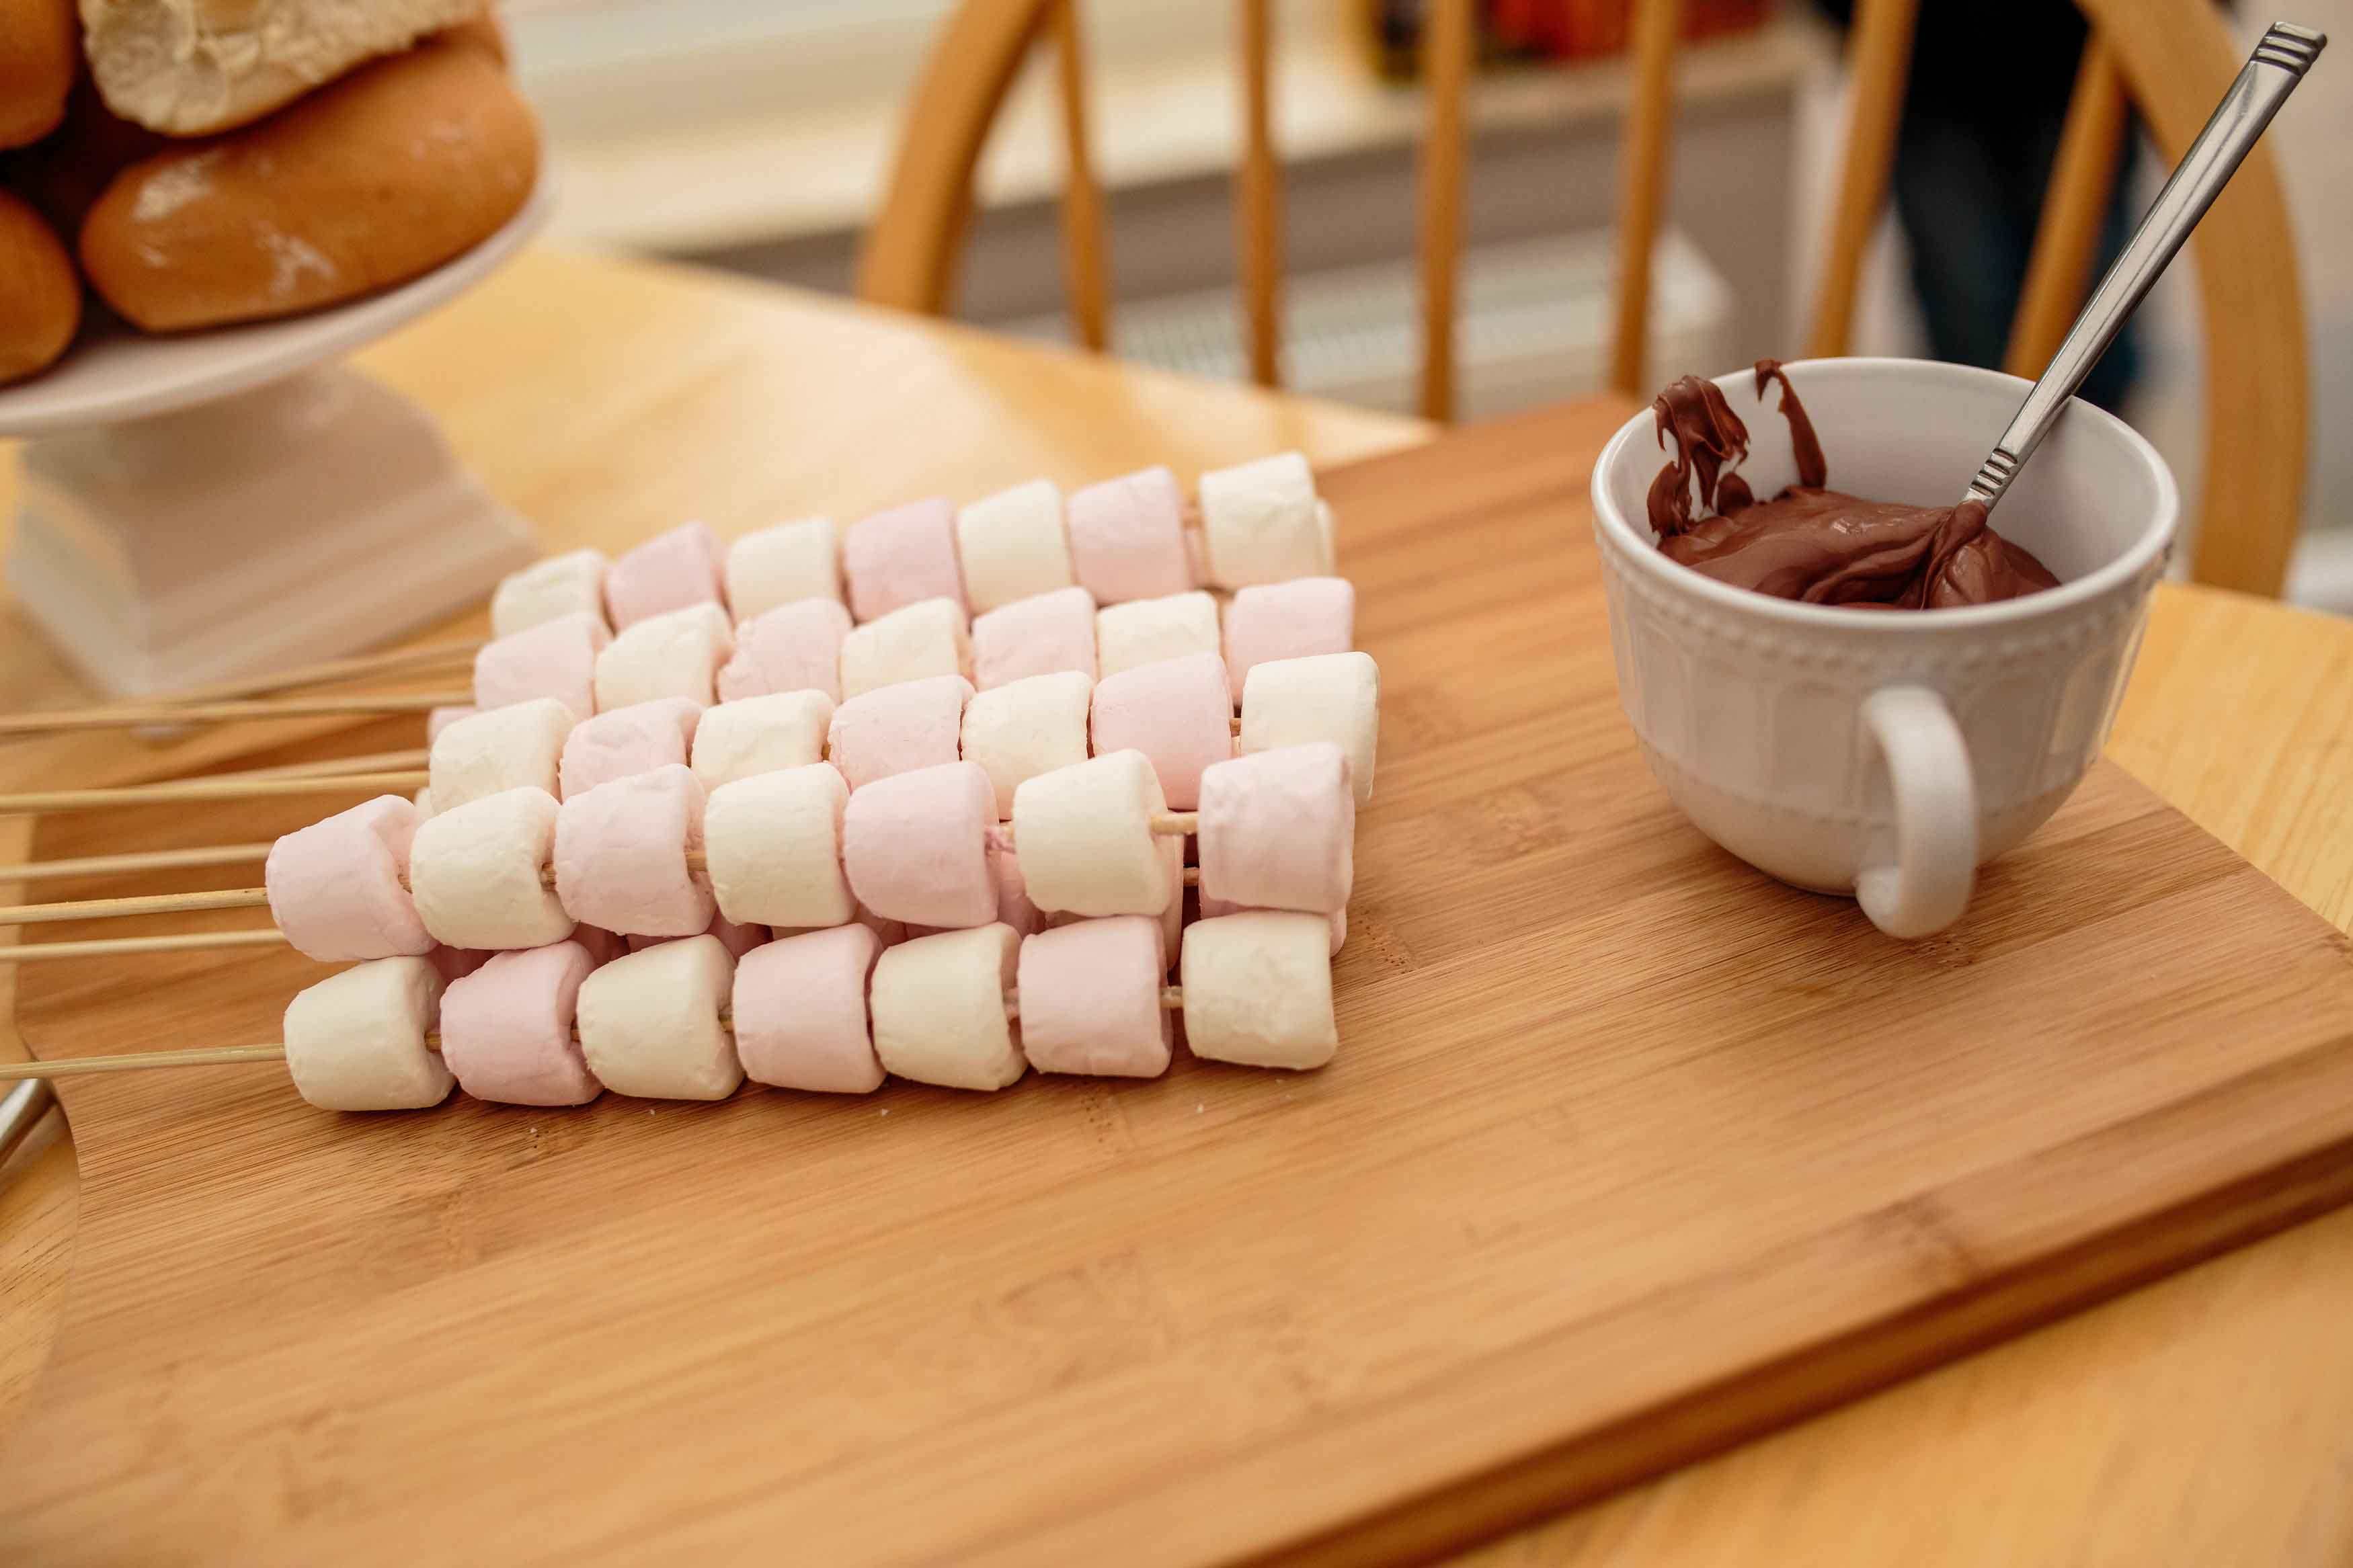 Marshmallows for roasting and chocolate sauce